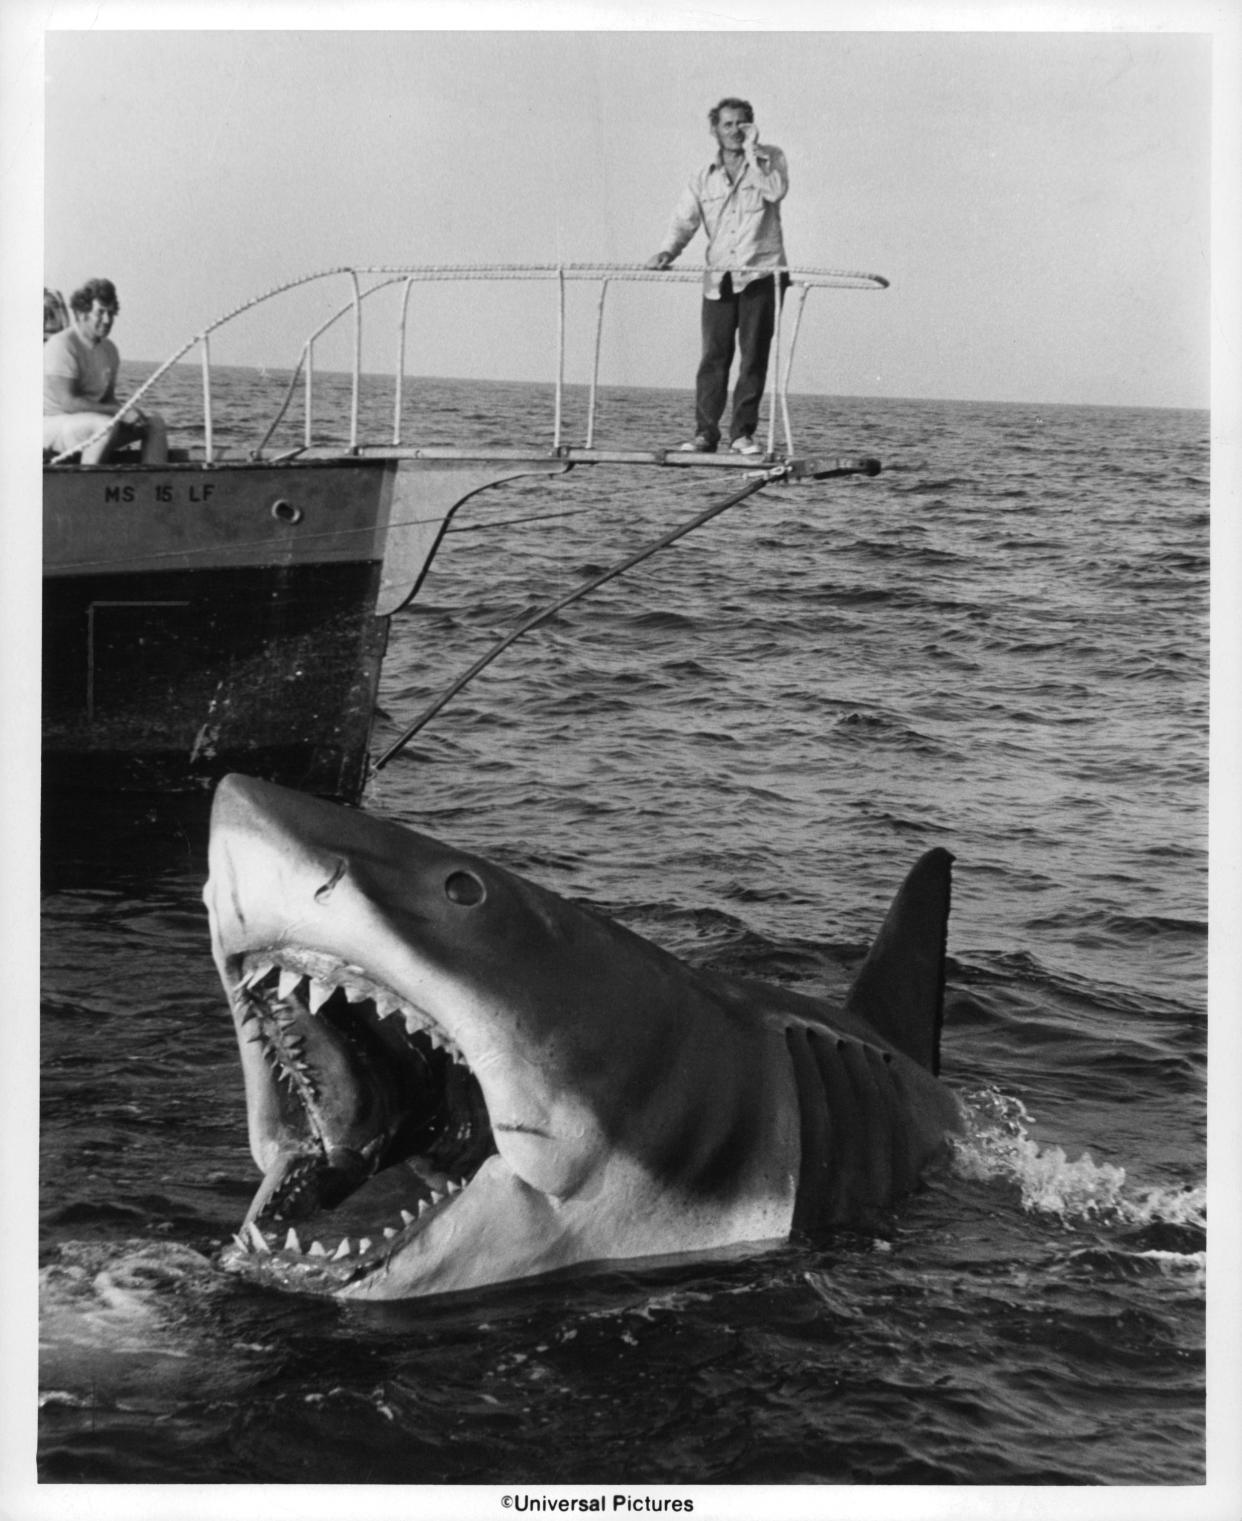 Robert Shaw stands over Jaws in a scene from the film 'Jaws', 1975. (Photo by Universal Pictures/Getty Images)